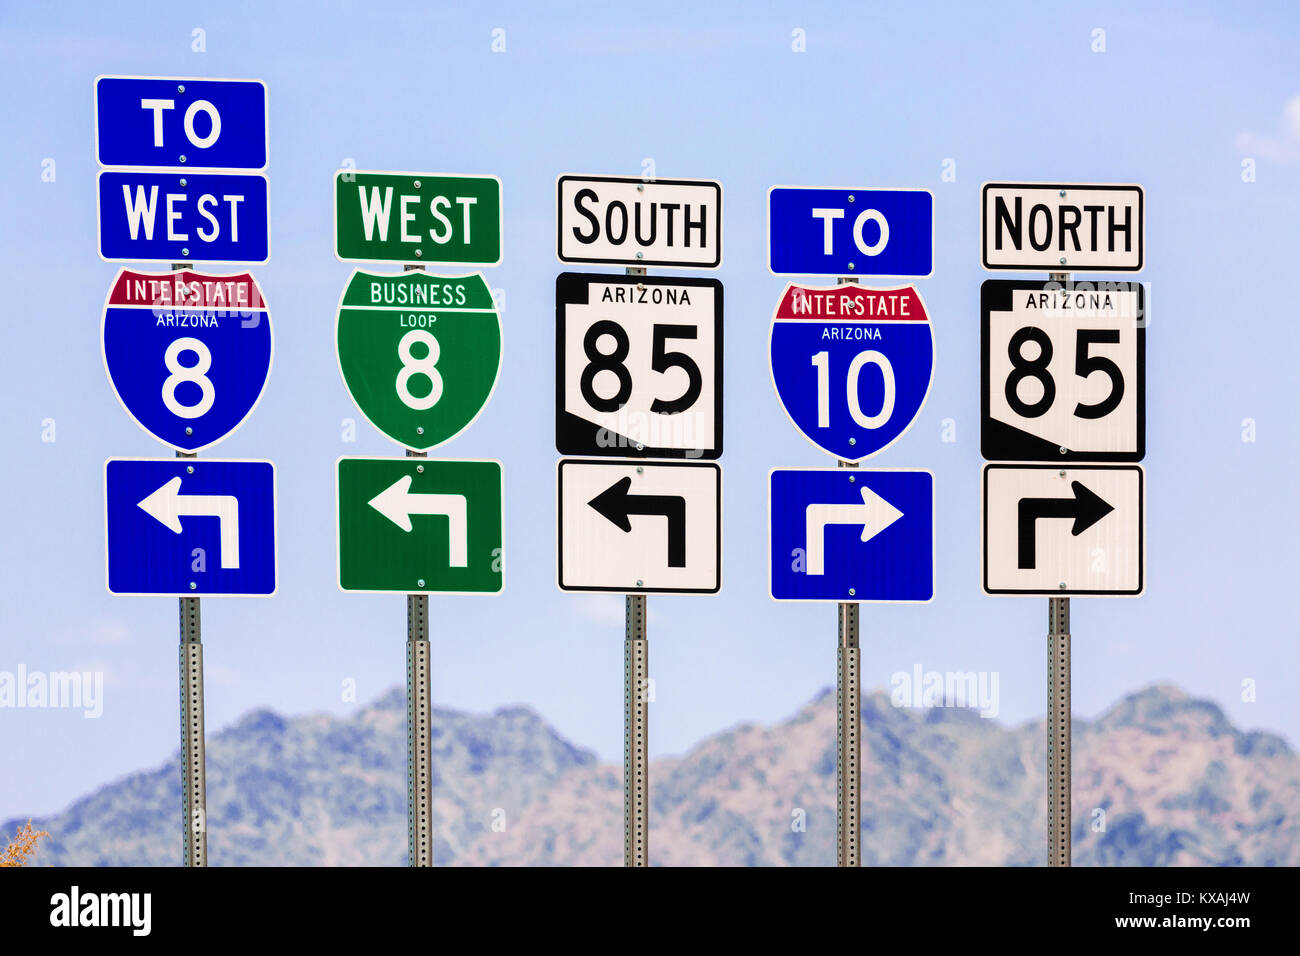 American road signs, Arizona, USA - Stock Image